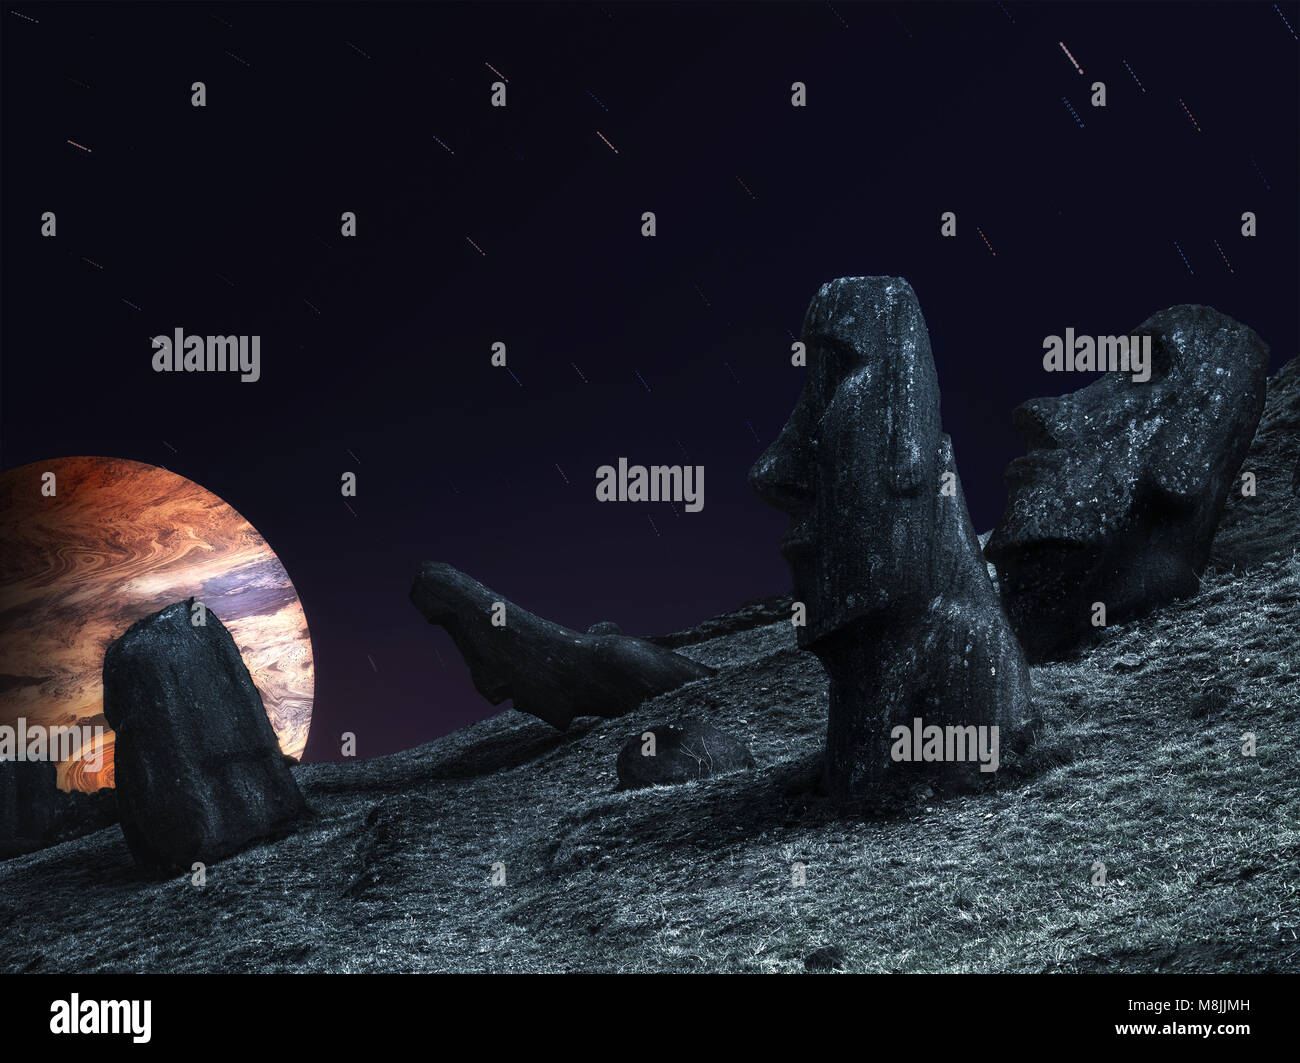 Latin America, Chile, Easter island, October, 2012. - Stock Image